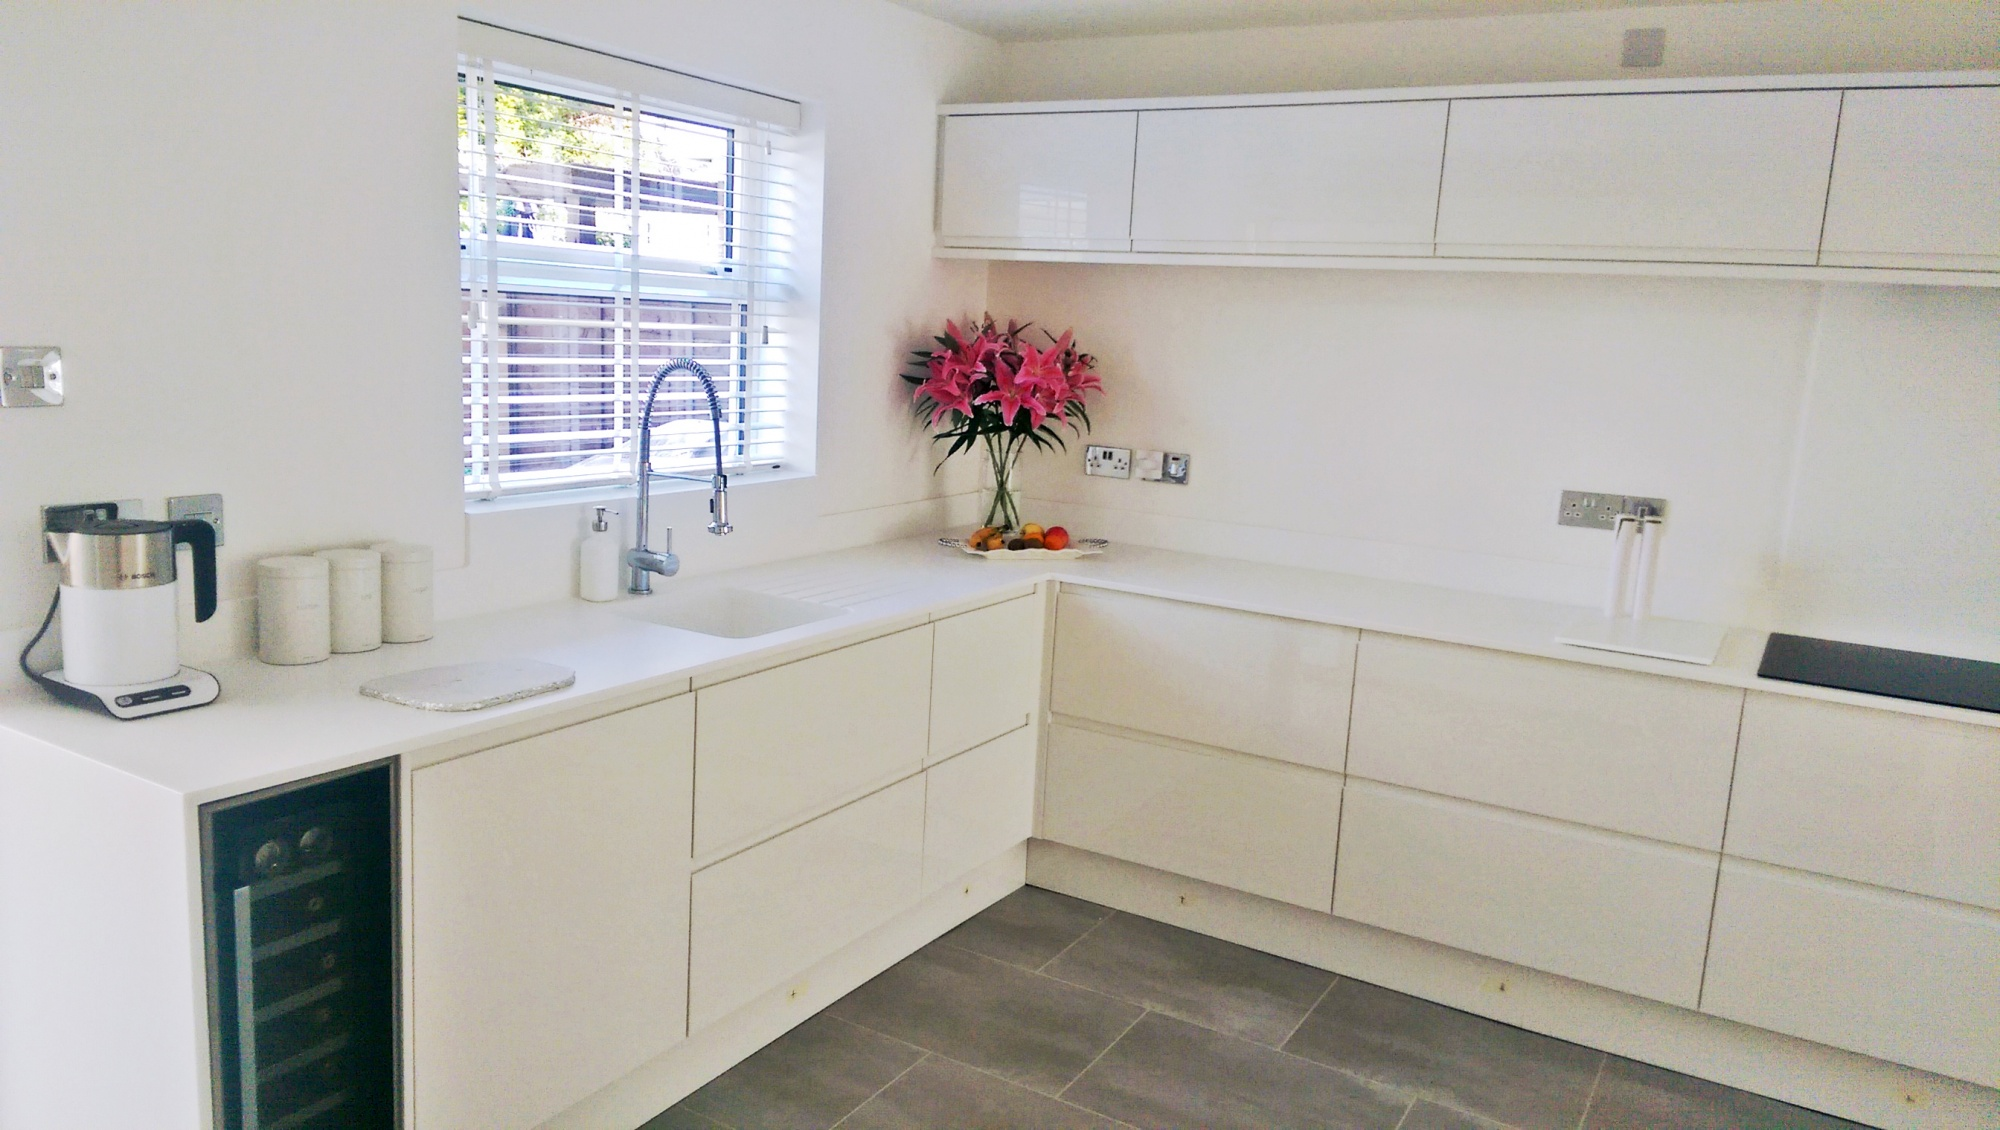 Home - Solid Surface North East Solid Surface North East